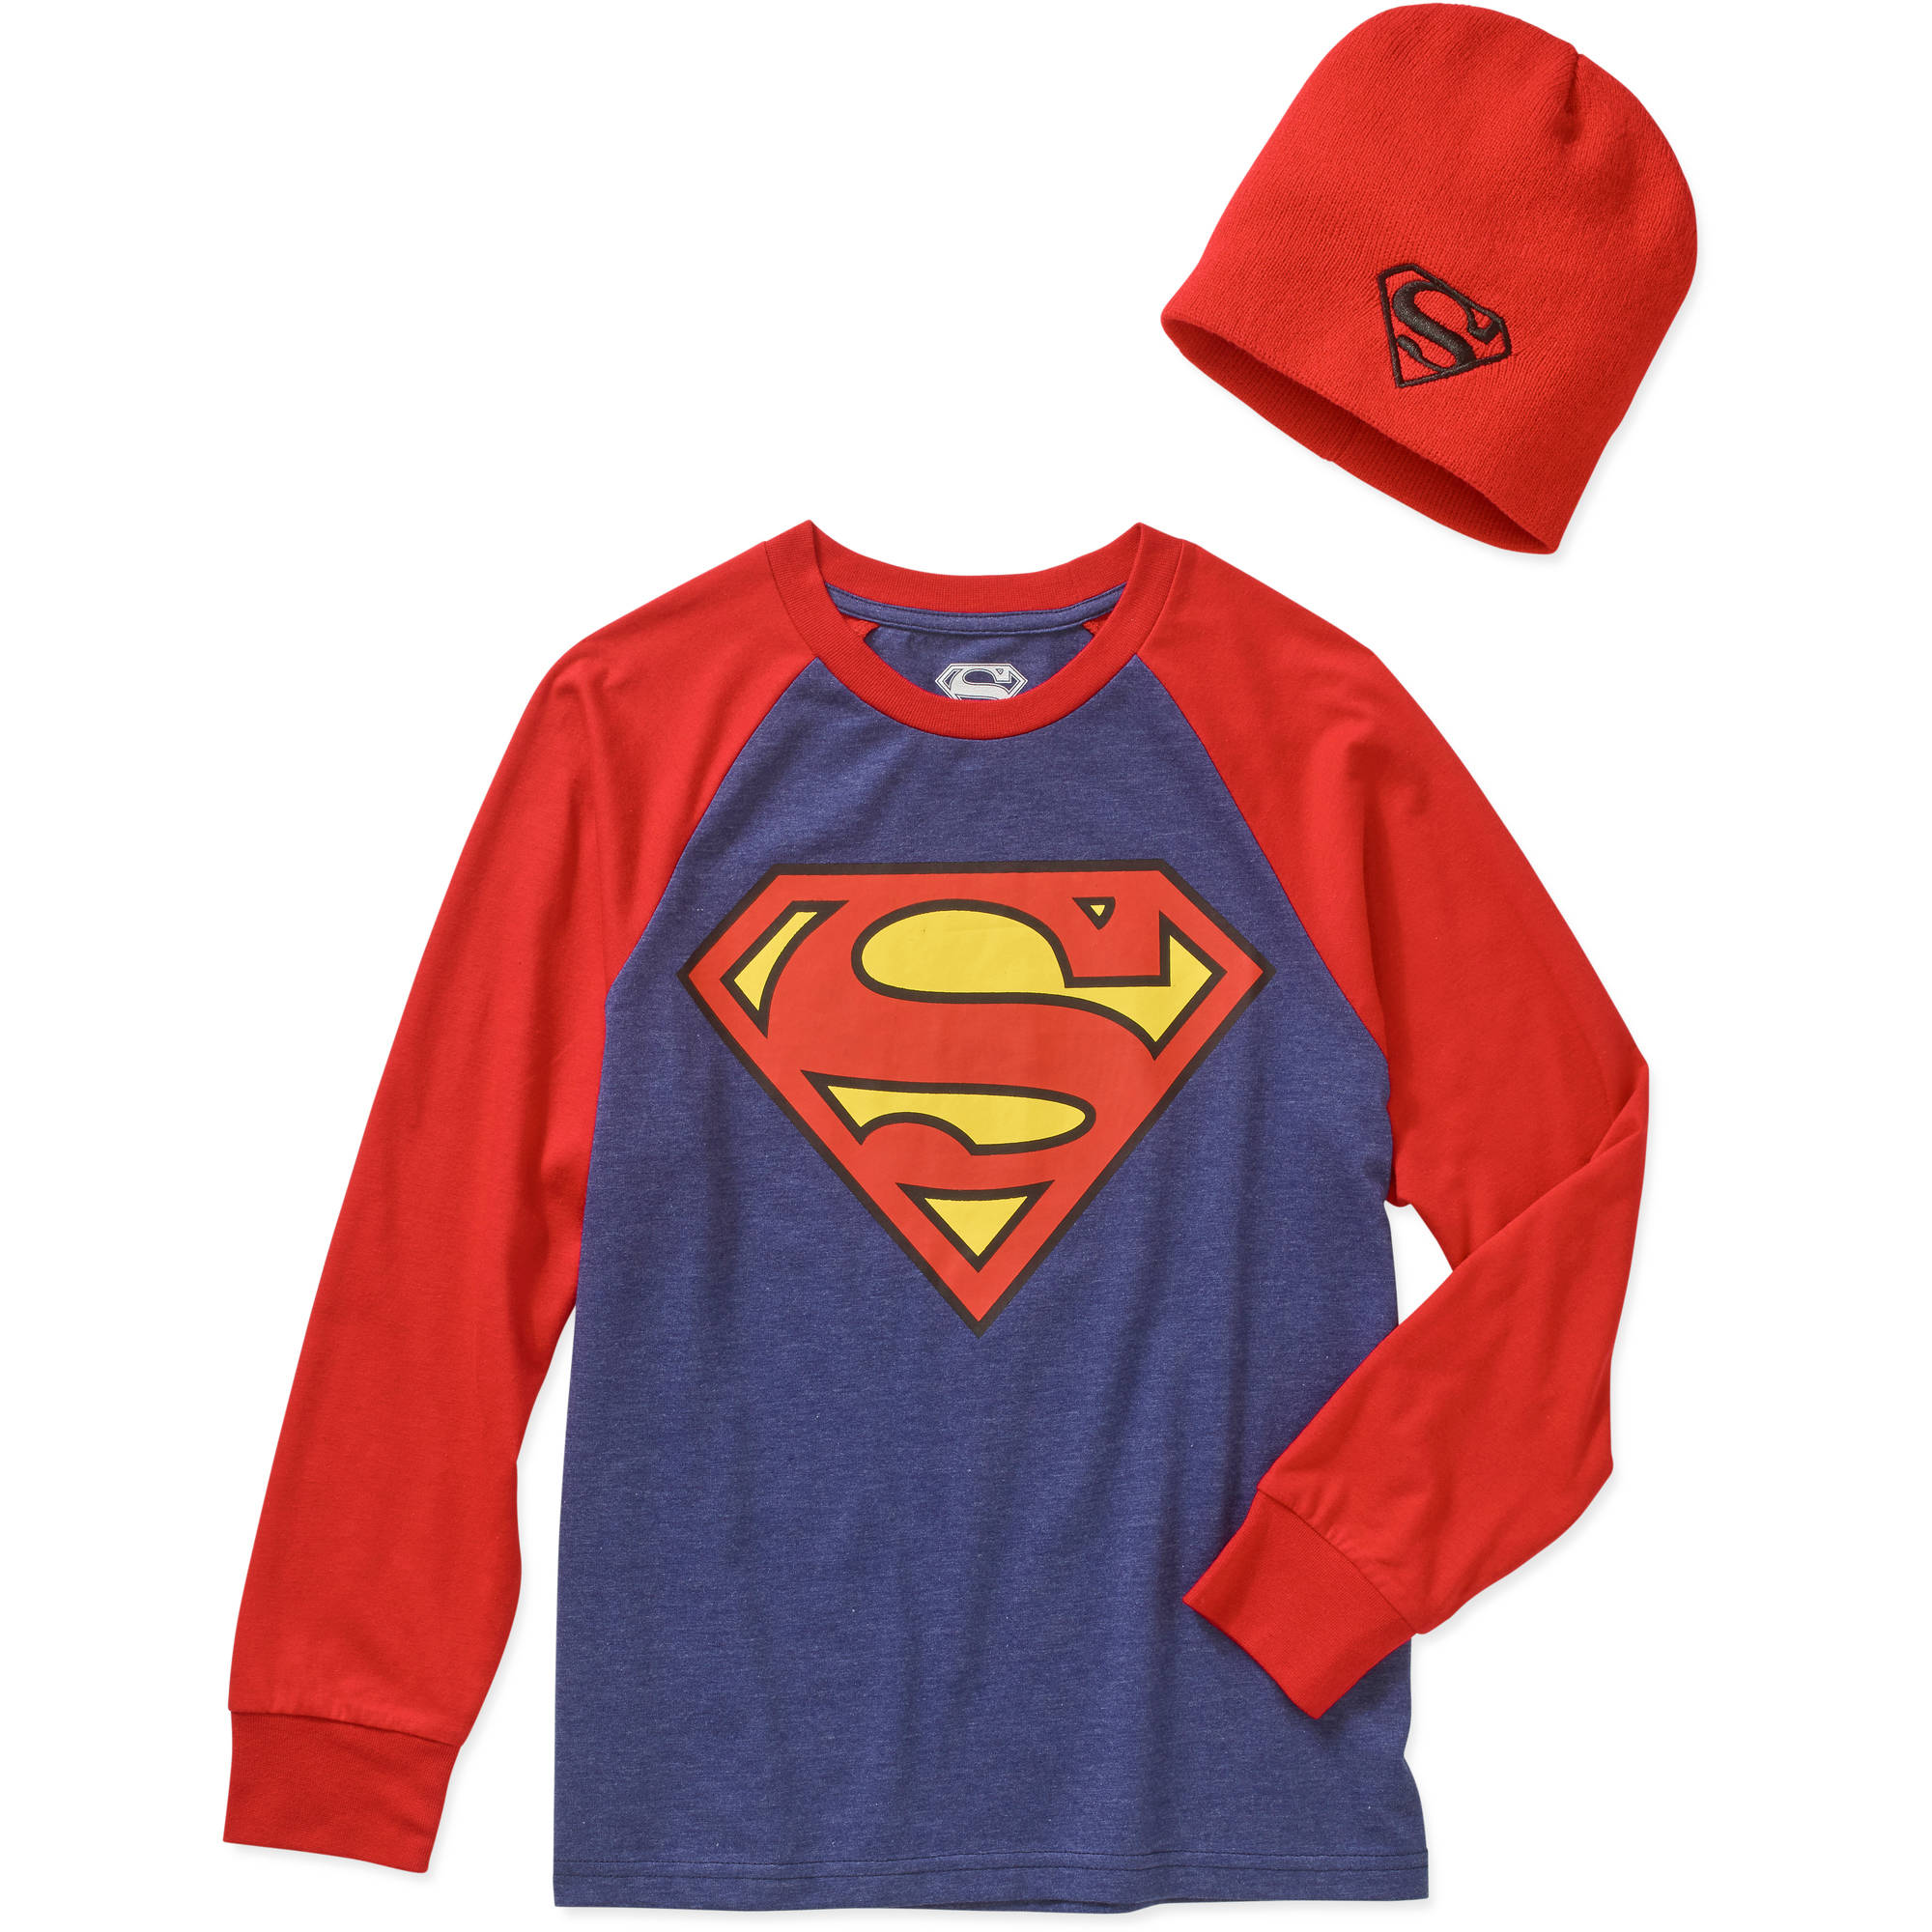 DC Comics Superman Boys' Graphic Tee with Beanie Combo